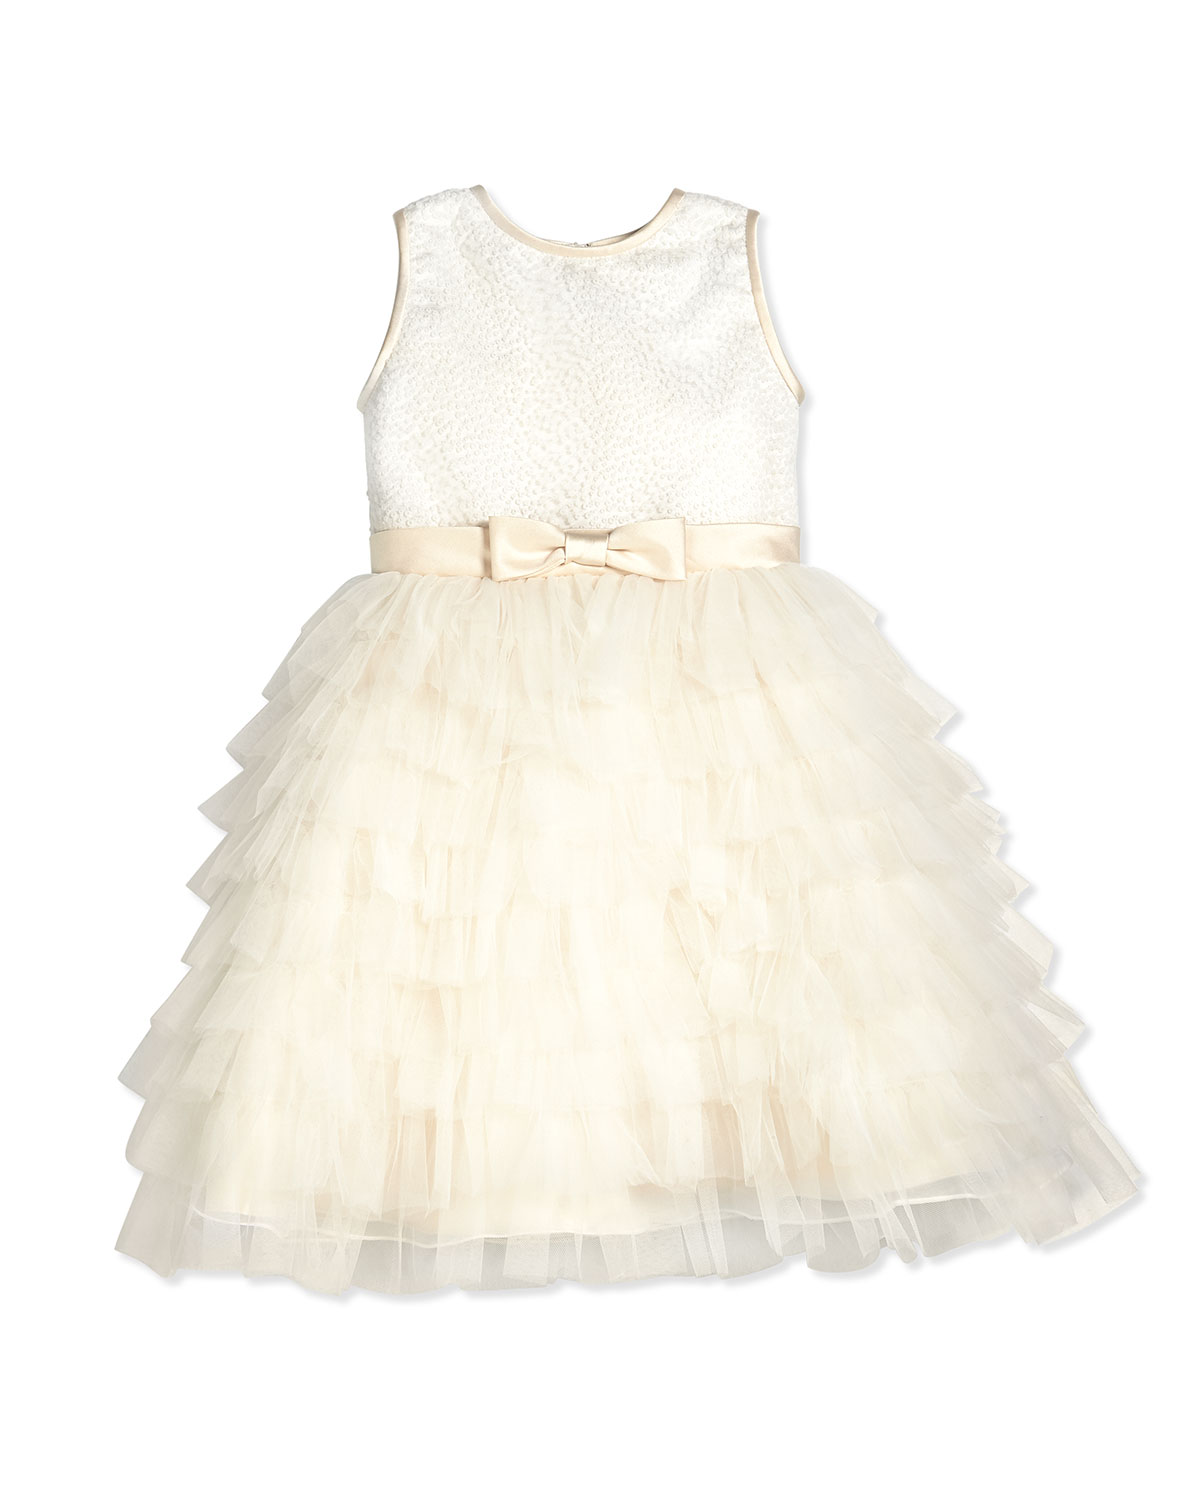 Sleeveless Sequin Tiered Dress Ivory Size 214